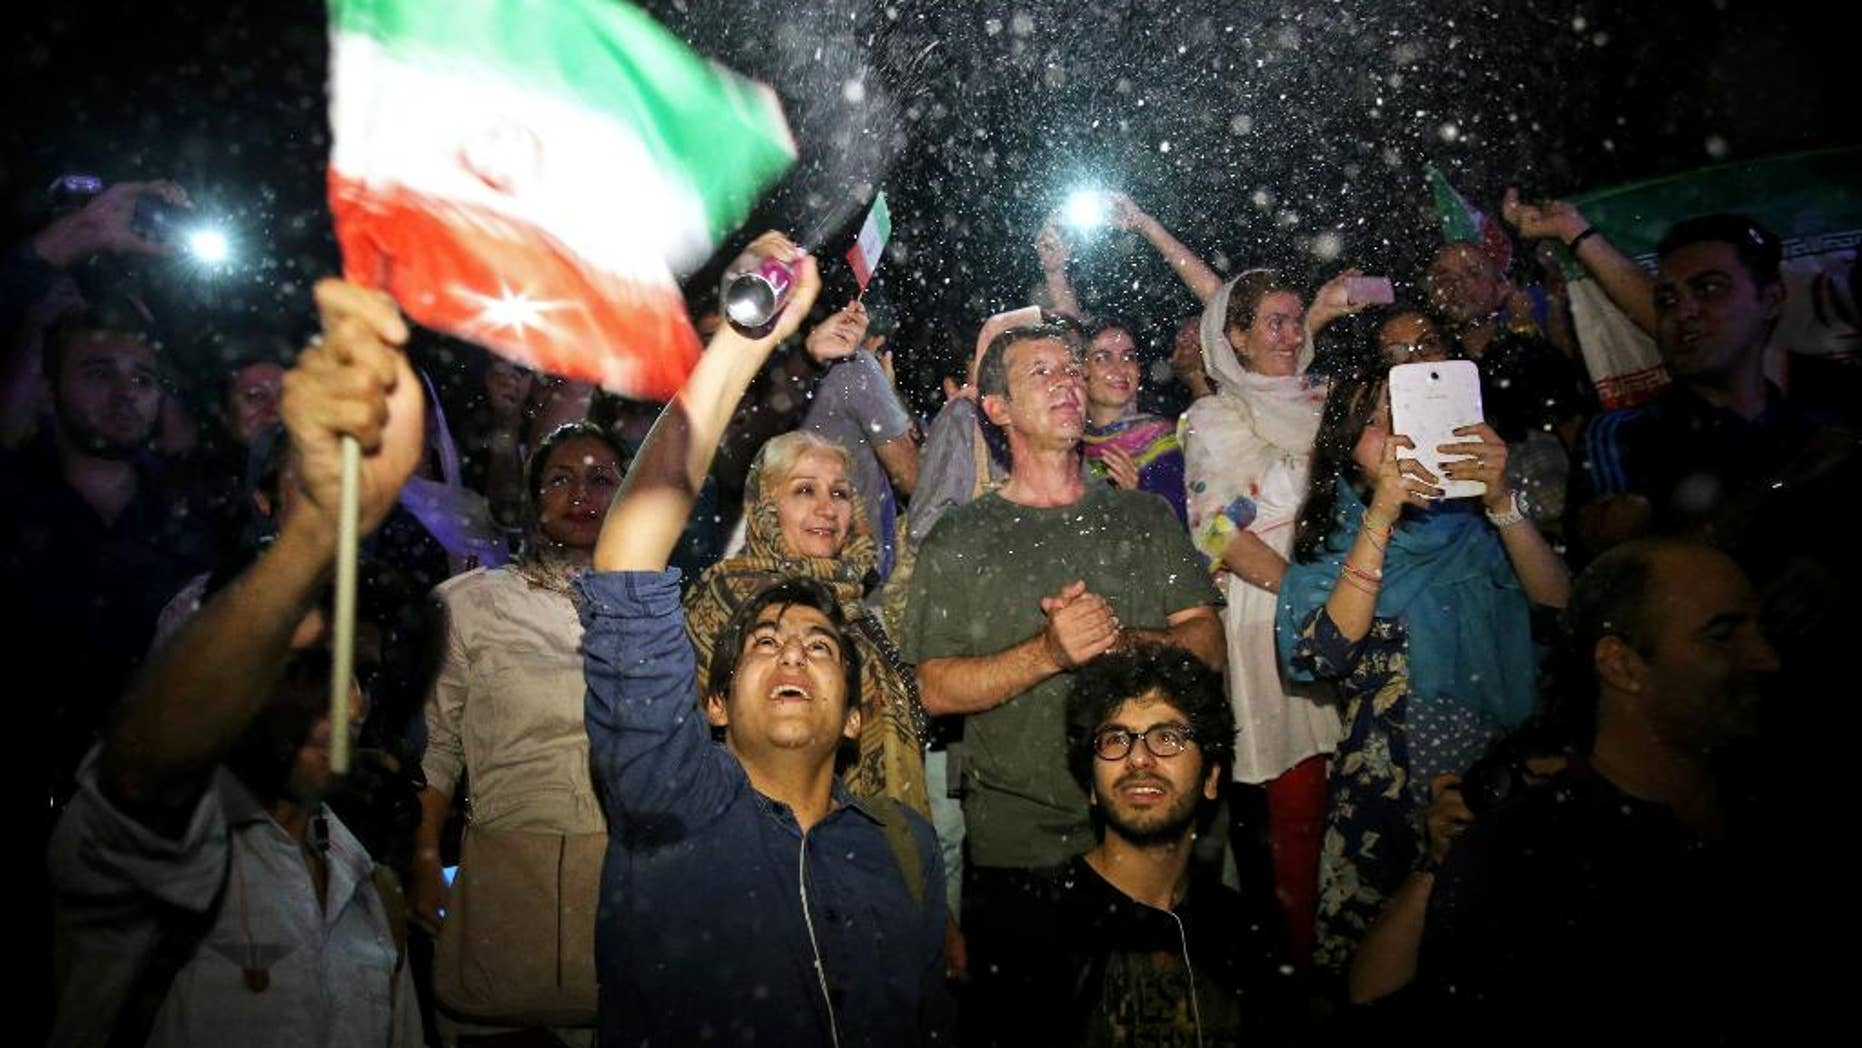 A group of jubilant Iranians cheer and spray artificial snow during street celebrations following a landmark nuclear deal, in Tehran, Iran, Tuesday, July 14, 2015. After long, fractious negotiations, world powers and Iran struck an historic deal Tuesday to curb Iran's nuclear program in exchange for billions of dollars in relief from international sanctions - an agreement aimed at averting the threat of a nuclear-armed Iran and another U.S. military intervention in the Middle East. (AP Photo/Ebrahim Noroozi)